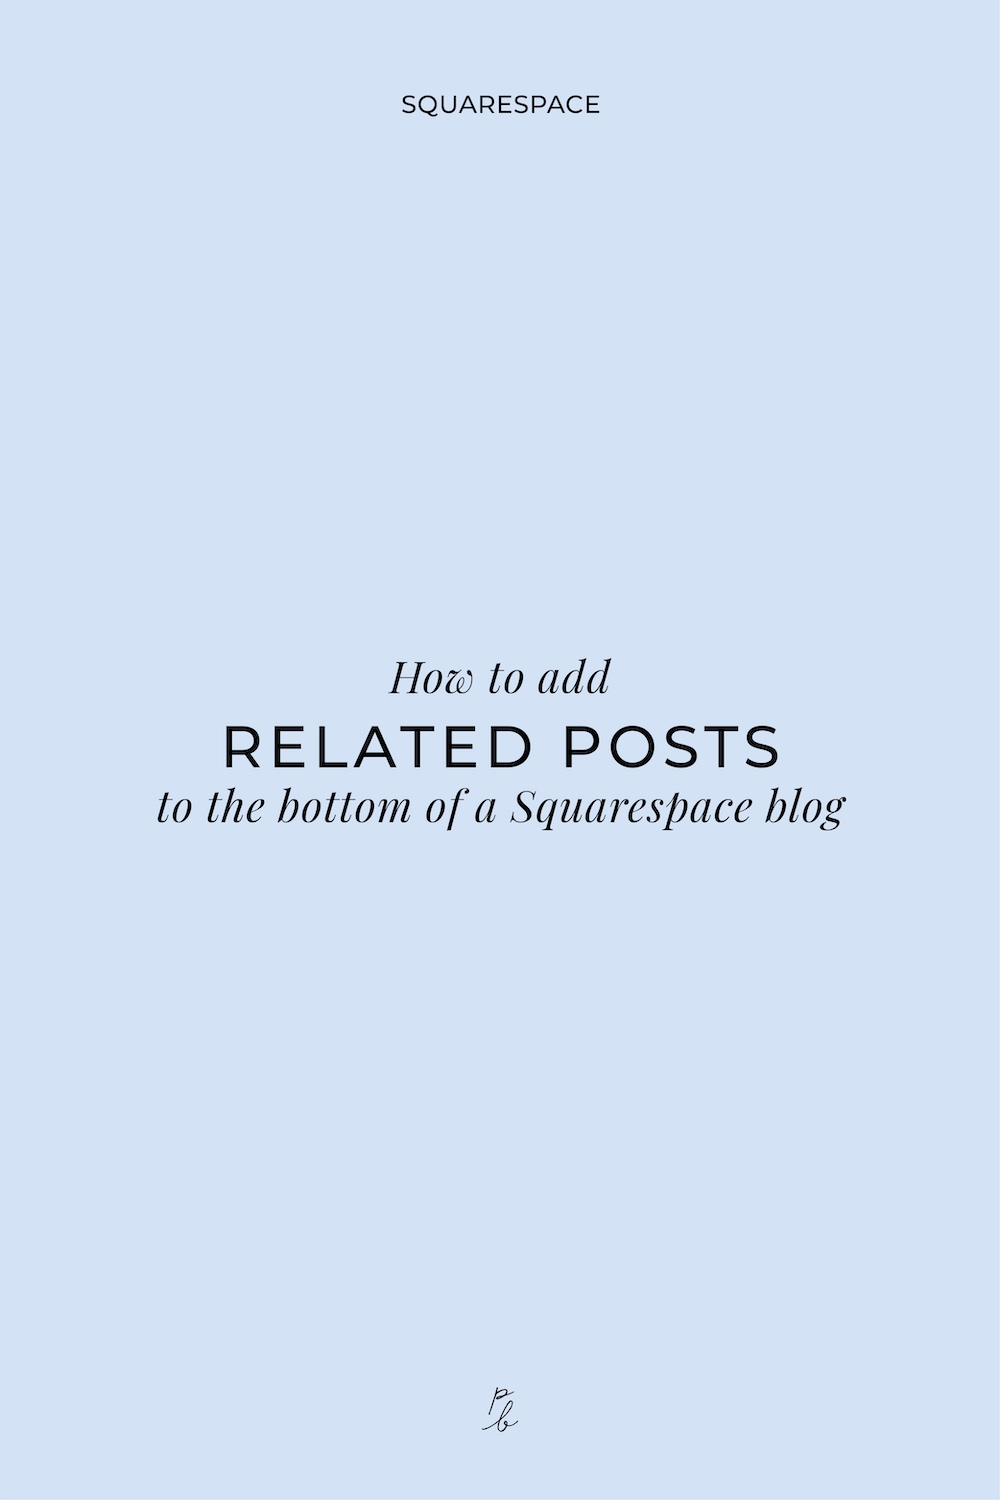 4-How to add related posts to the bottom of a Squarespace blog.jpg